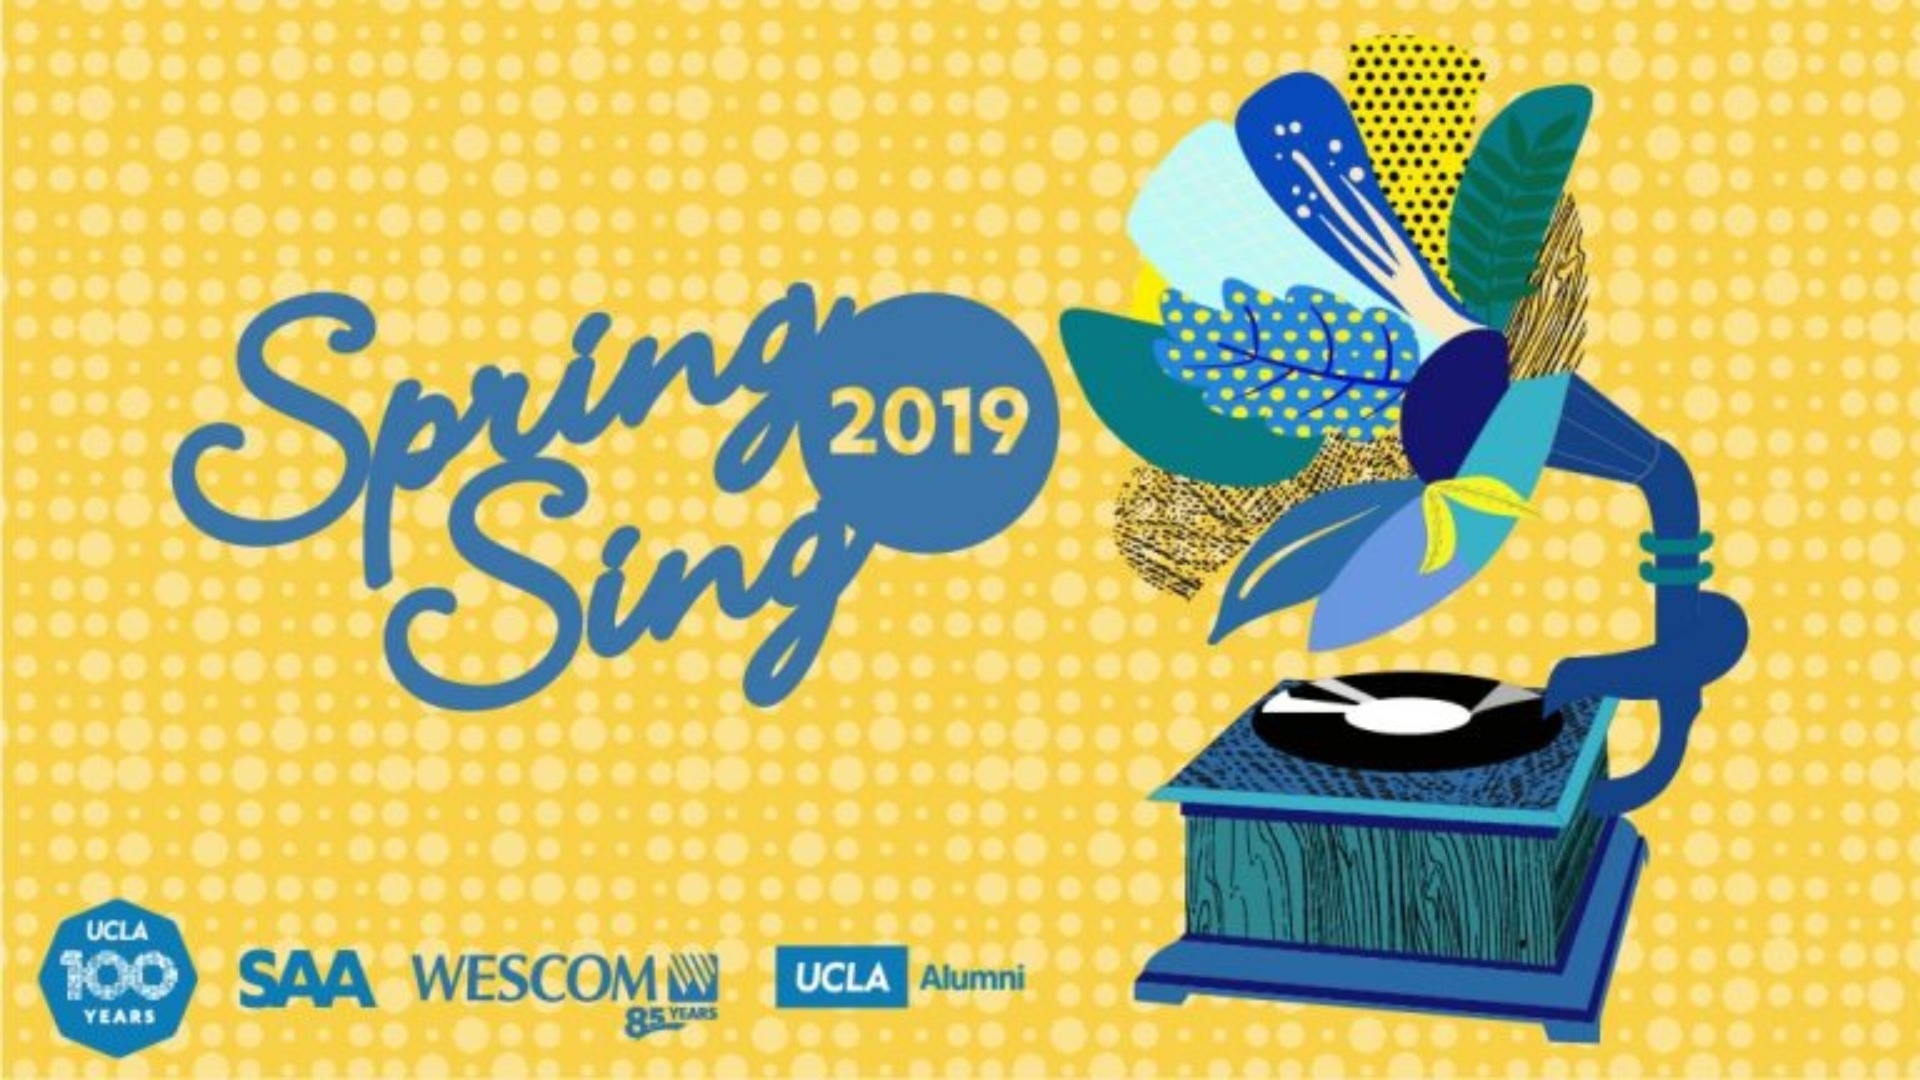 Vote for your Bruin Choice Award winner below. One vote per person, click the thumbs up to vote.